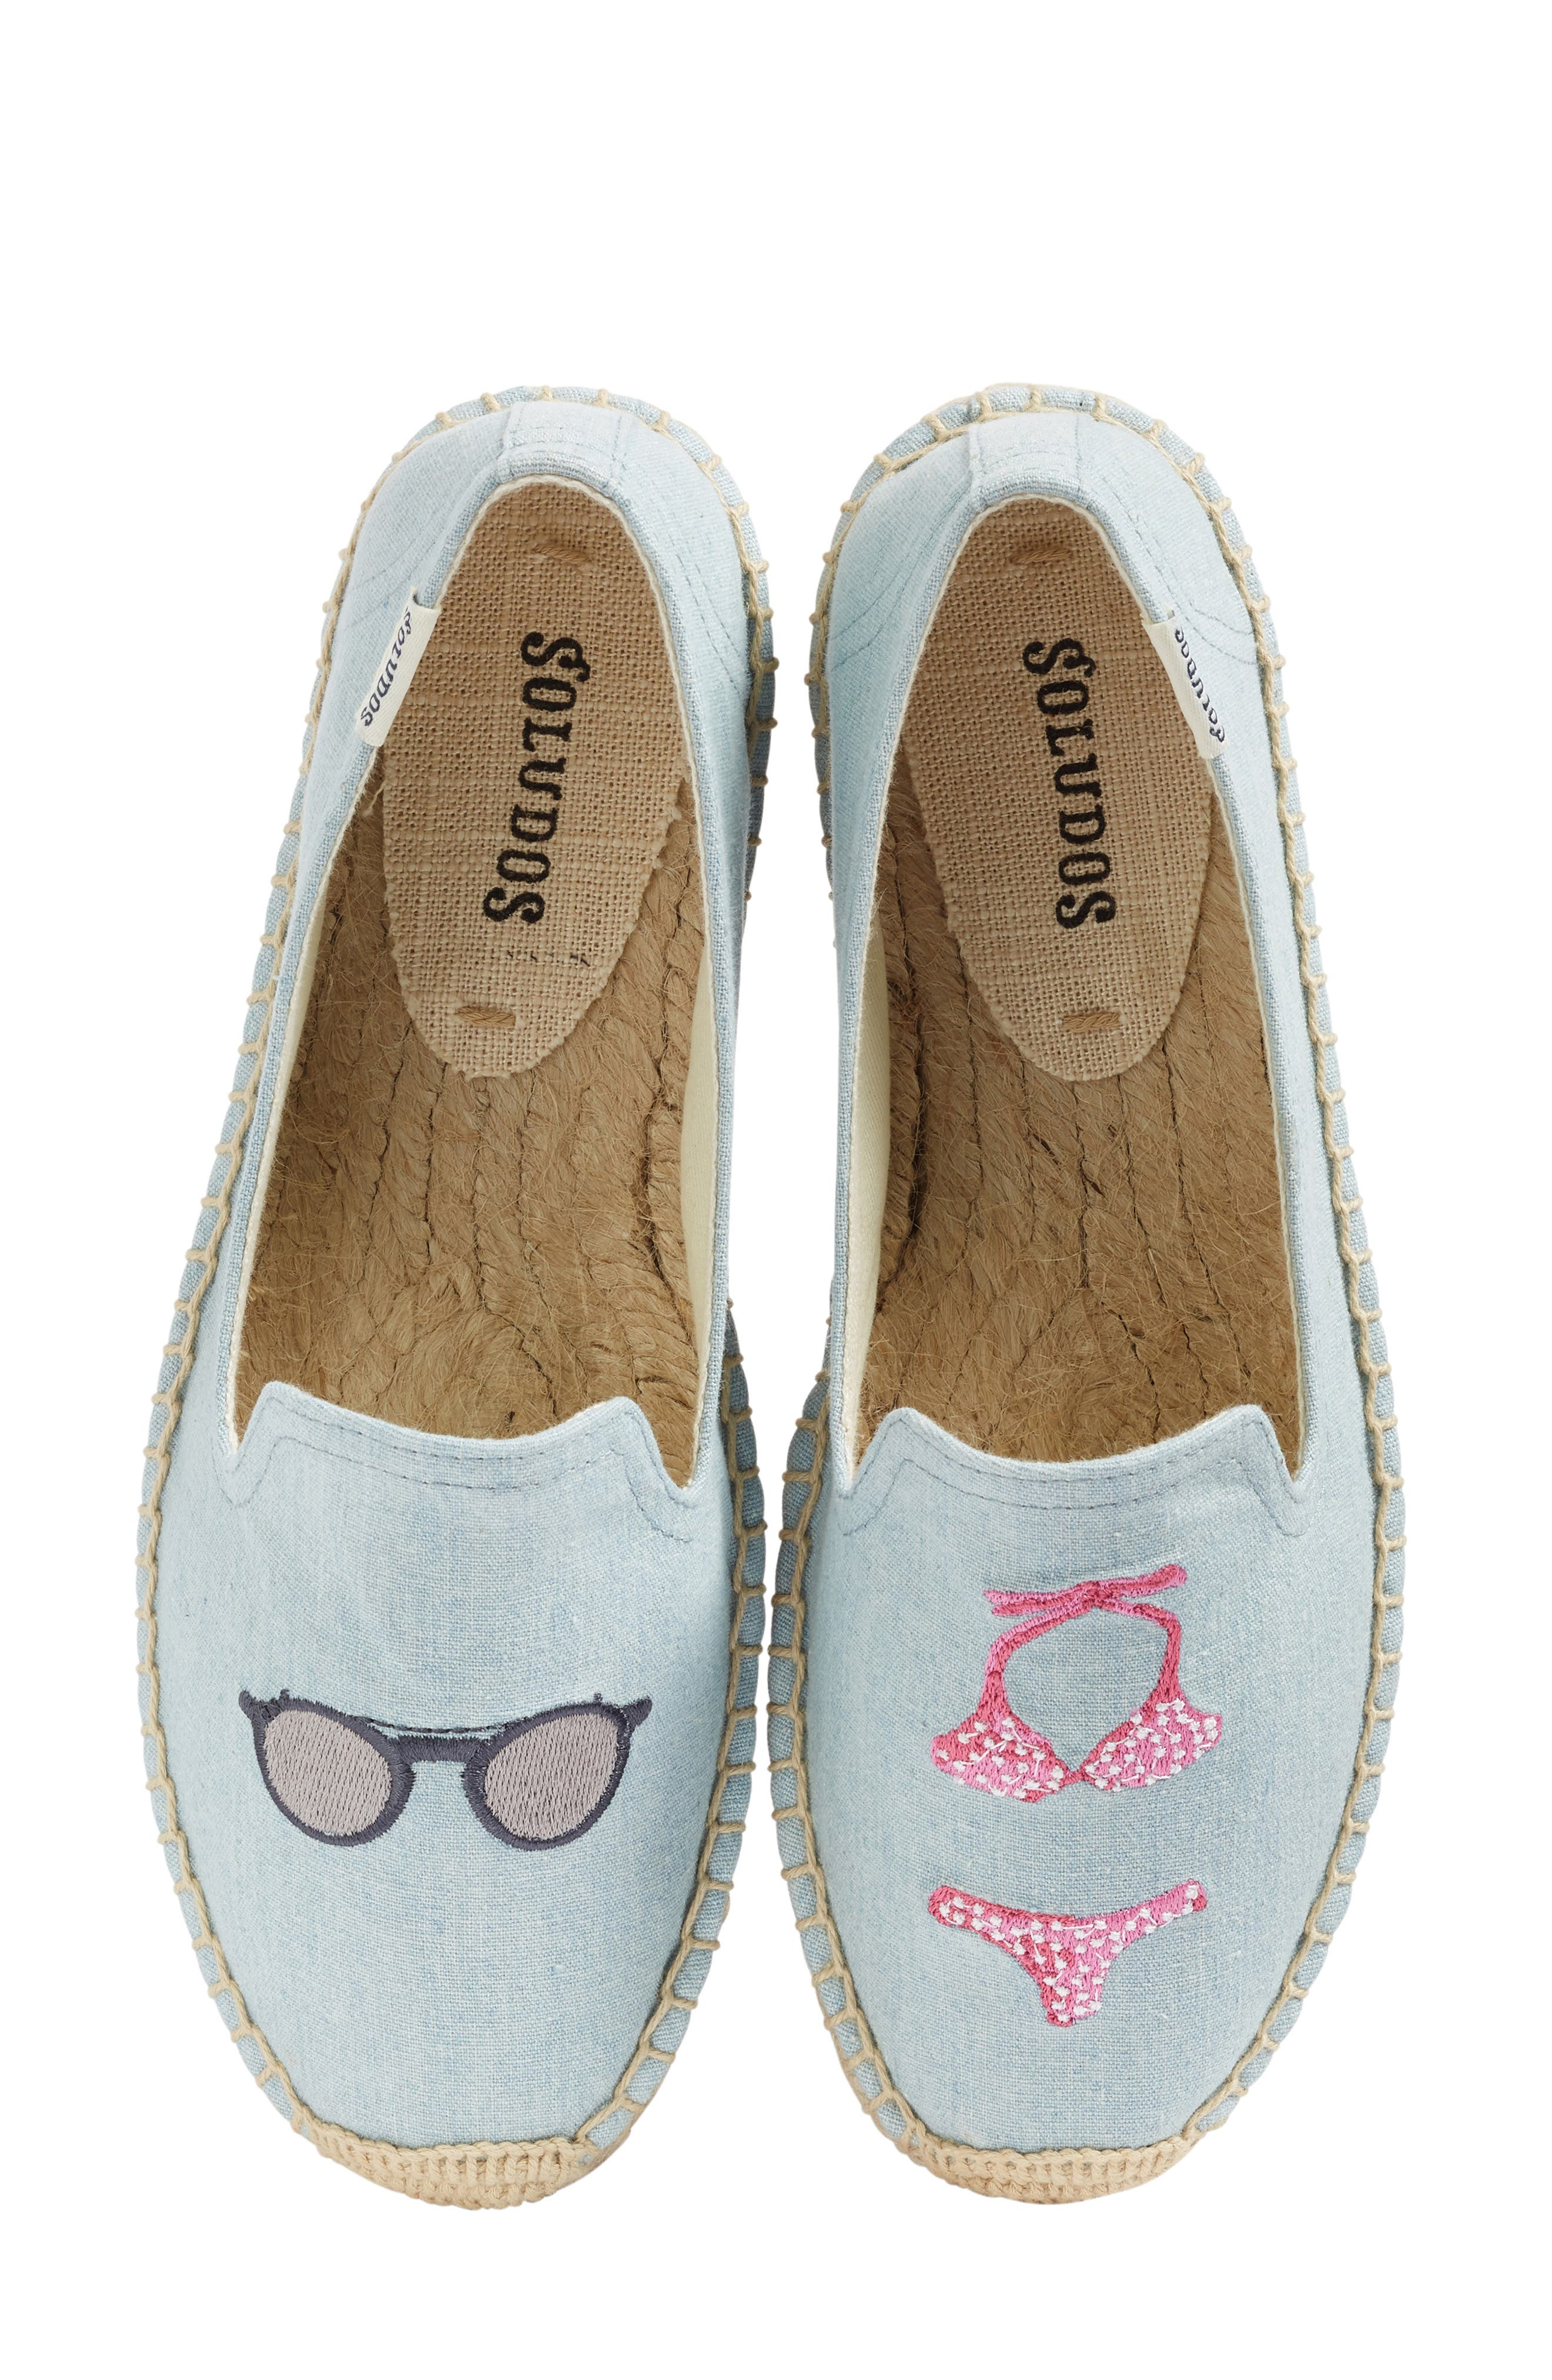 SOLUDOS Embroidered Smoking Slipper Flat